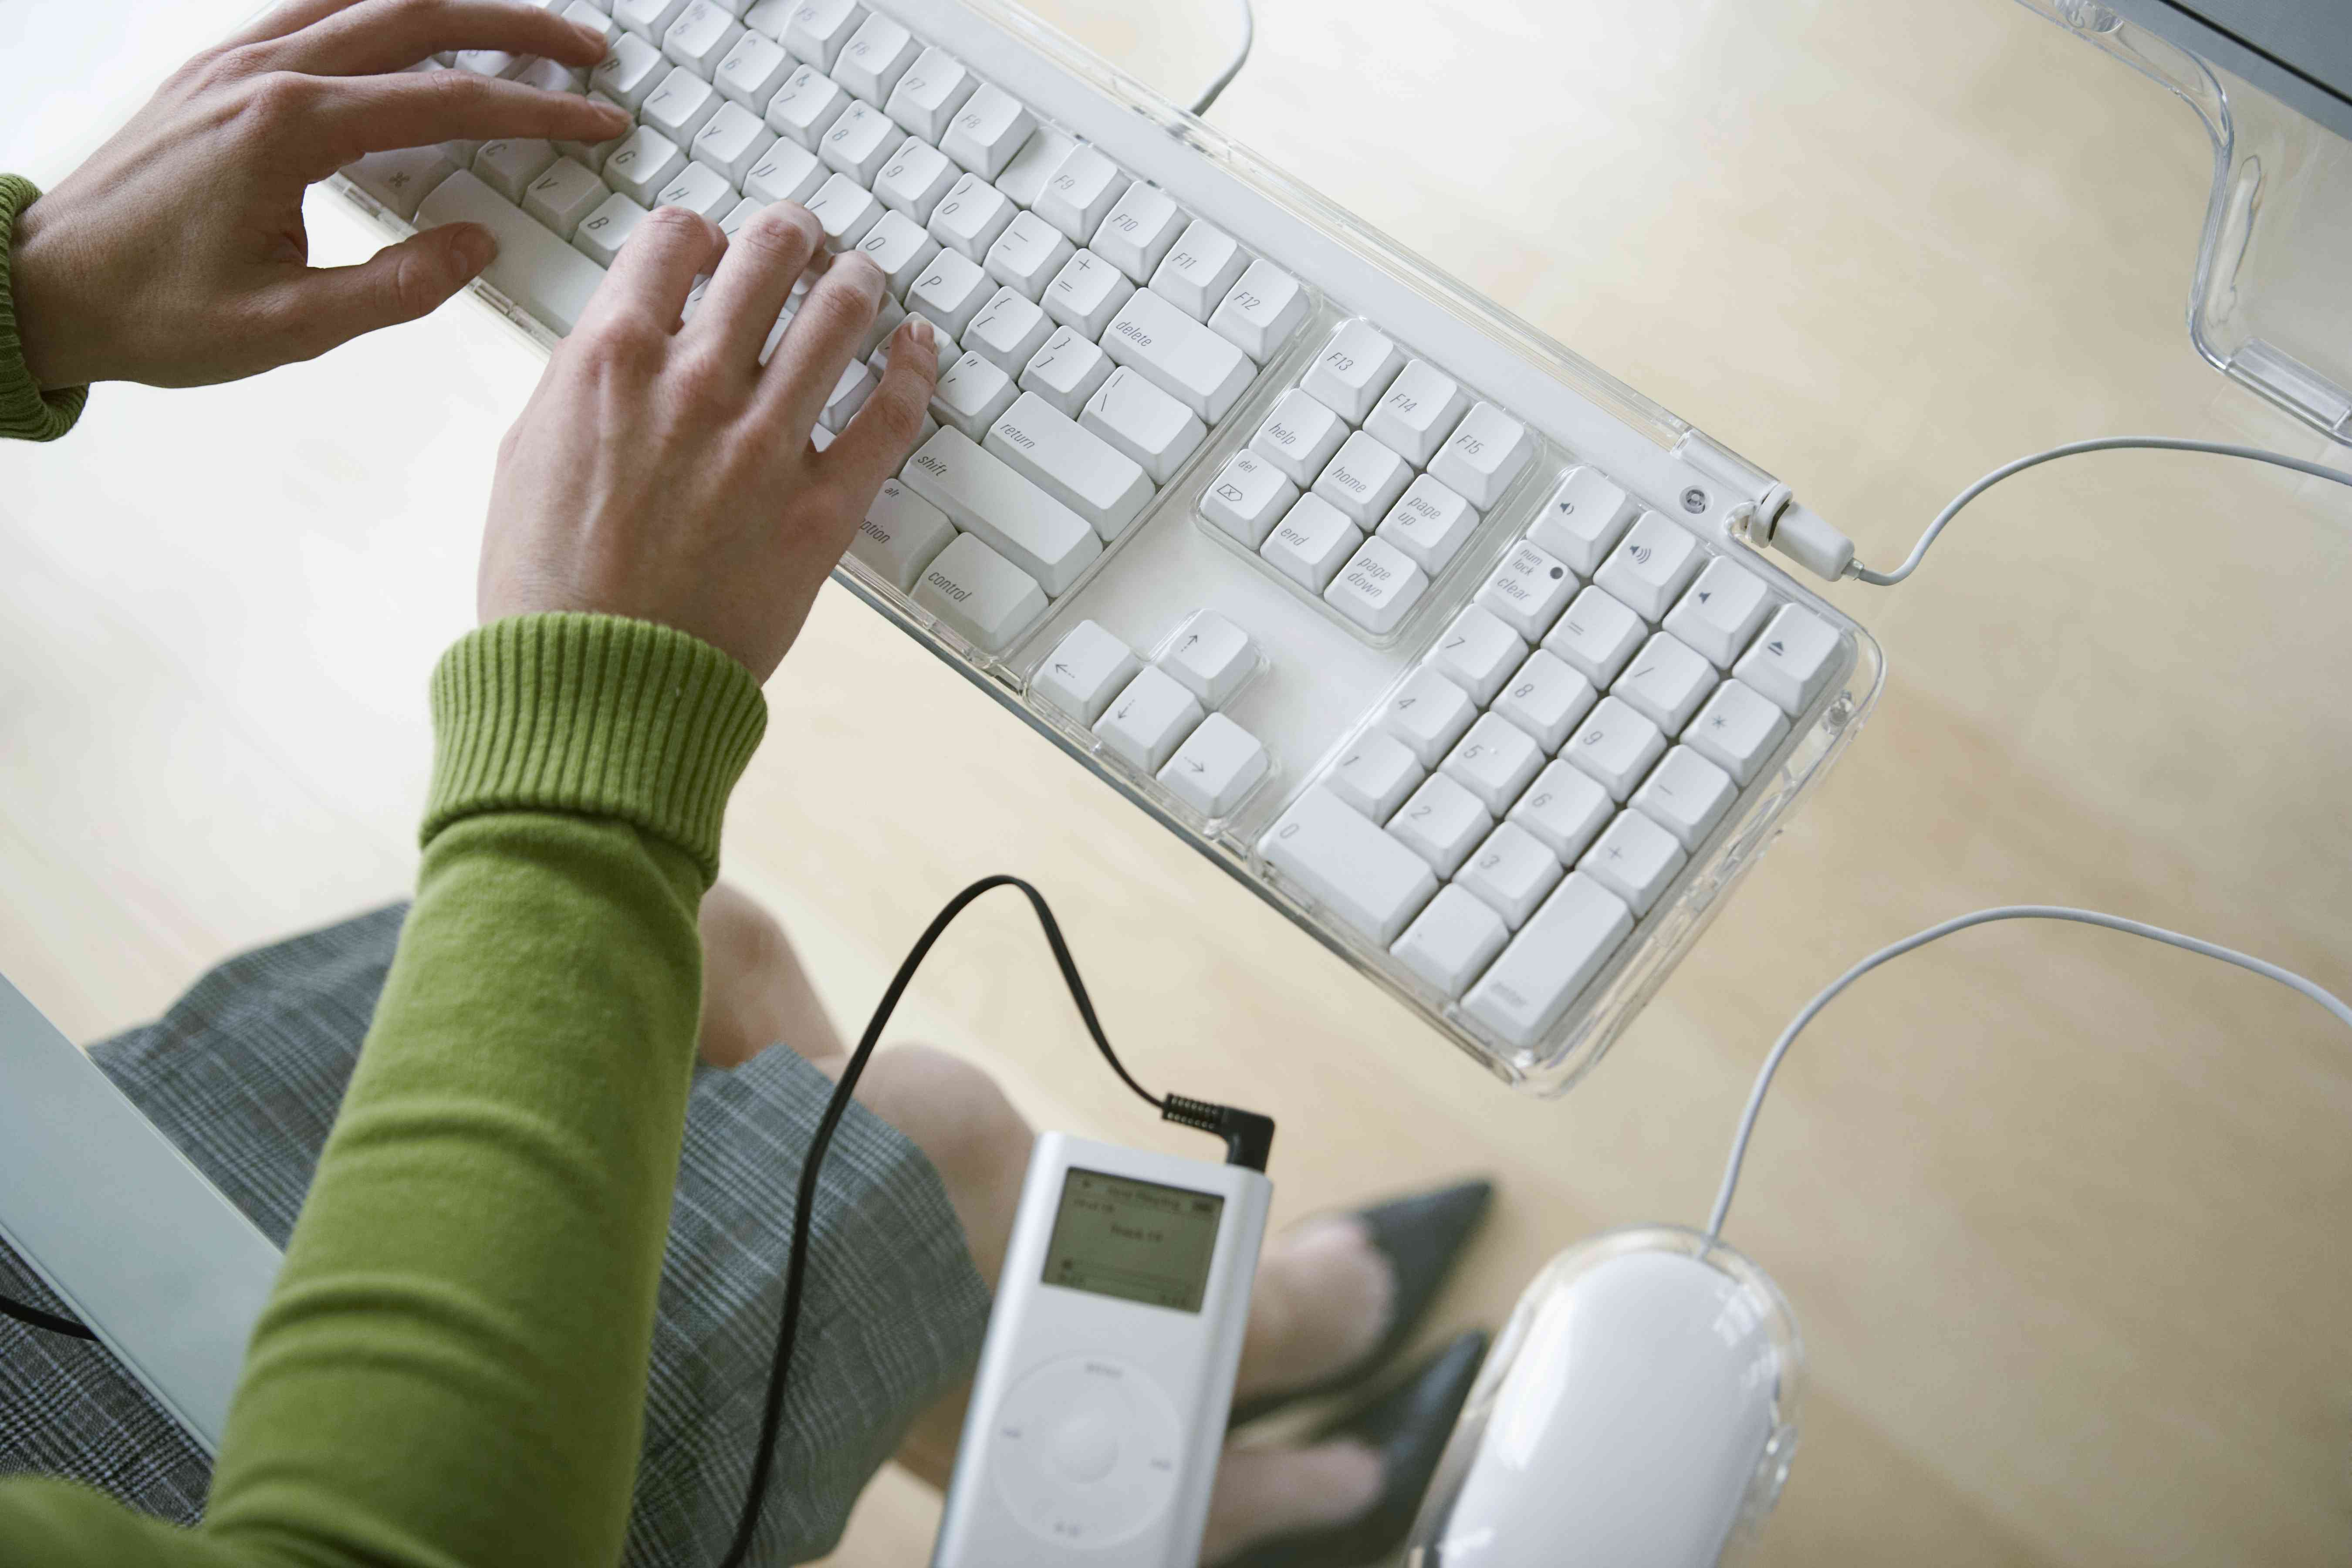 Woman typing on computer keyboard at transparent desk